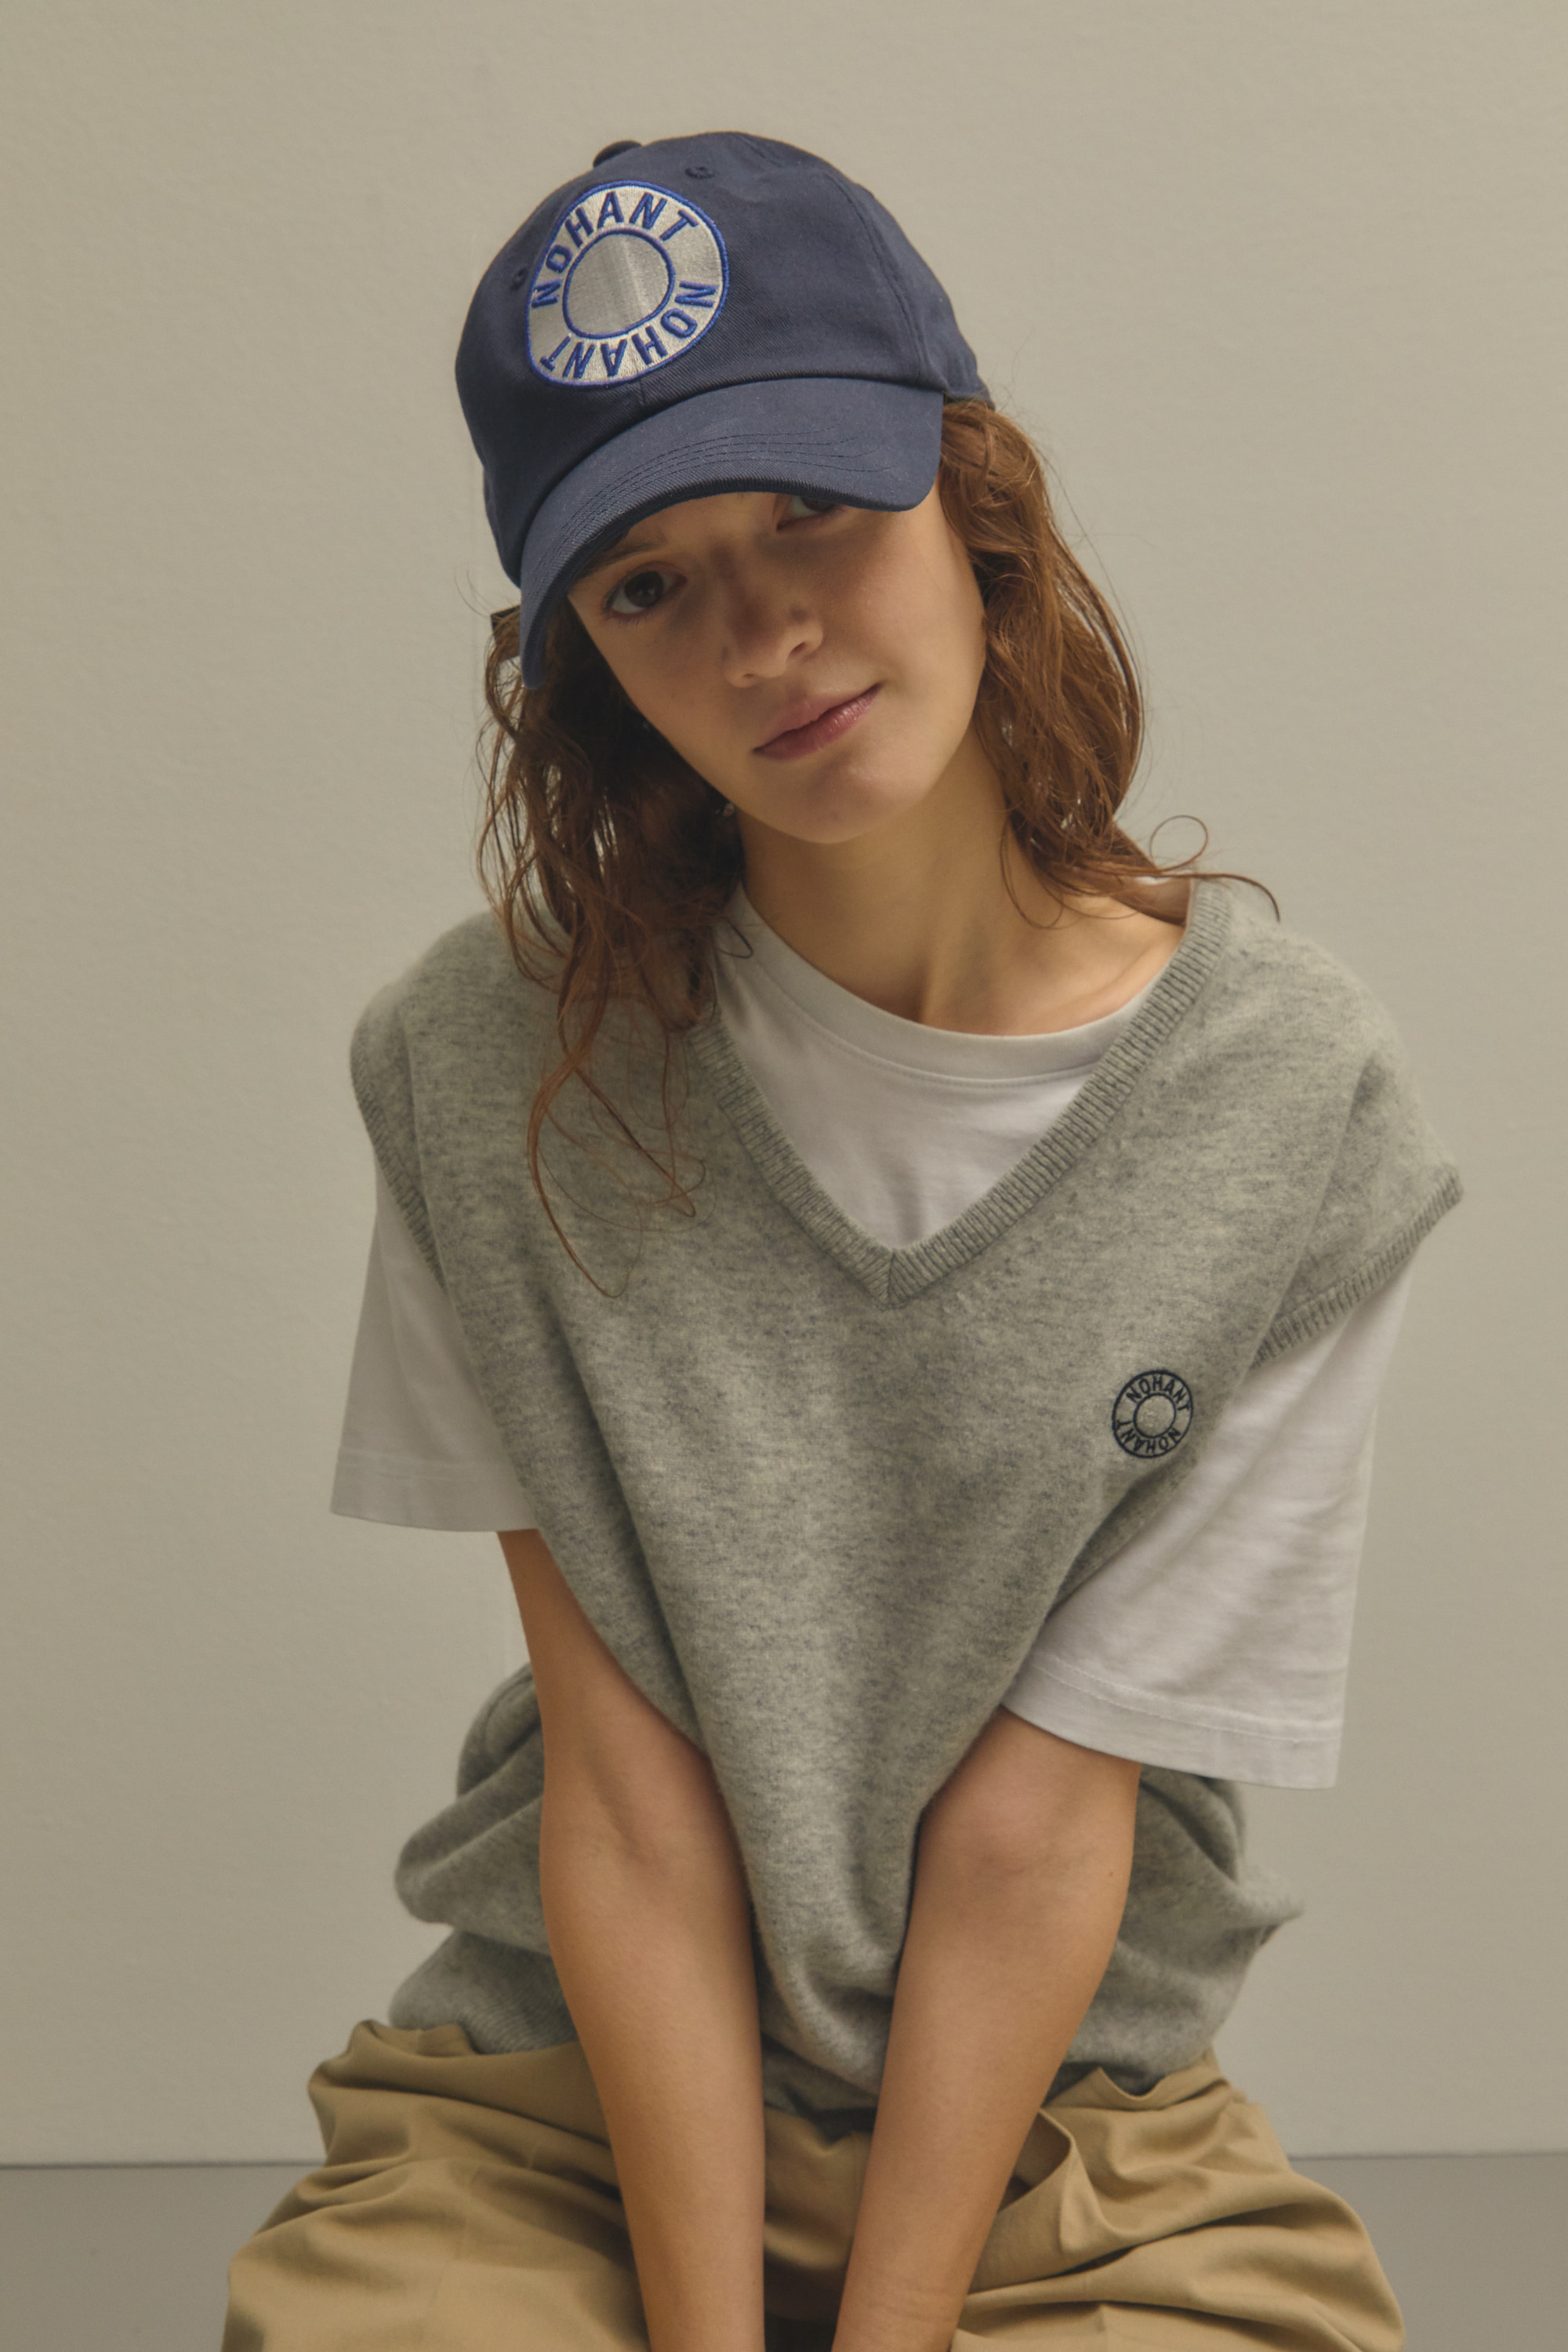 LOGO PATCH BALL CAP NAVY